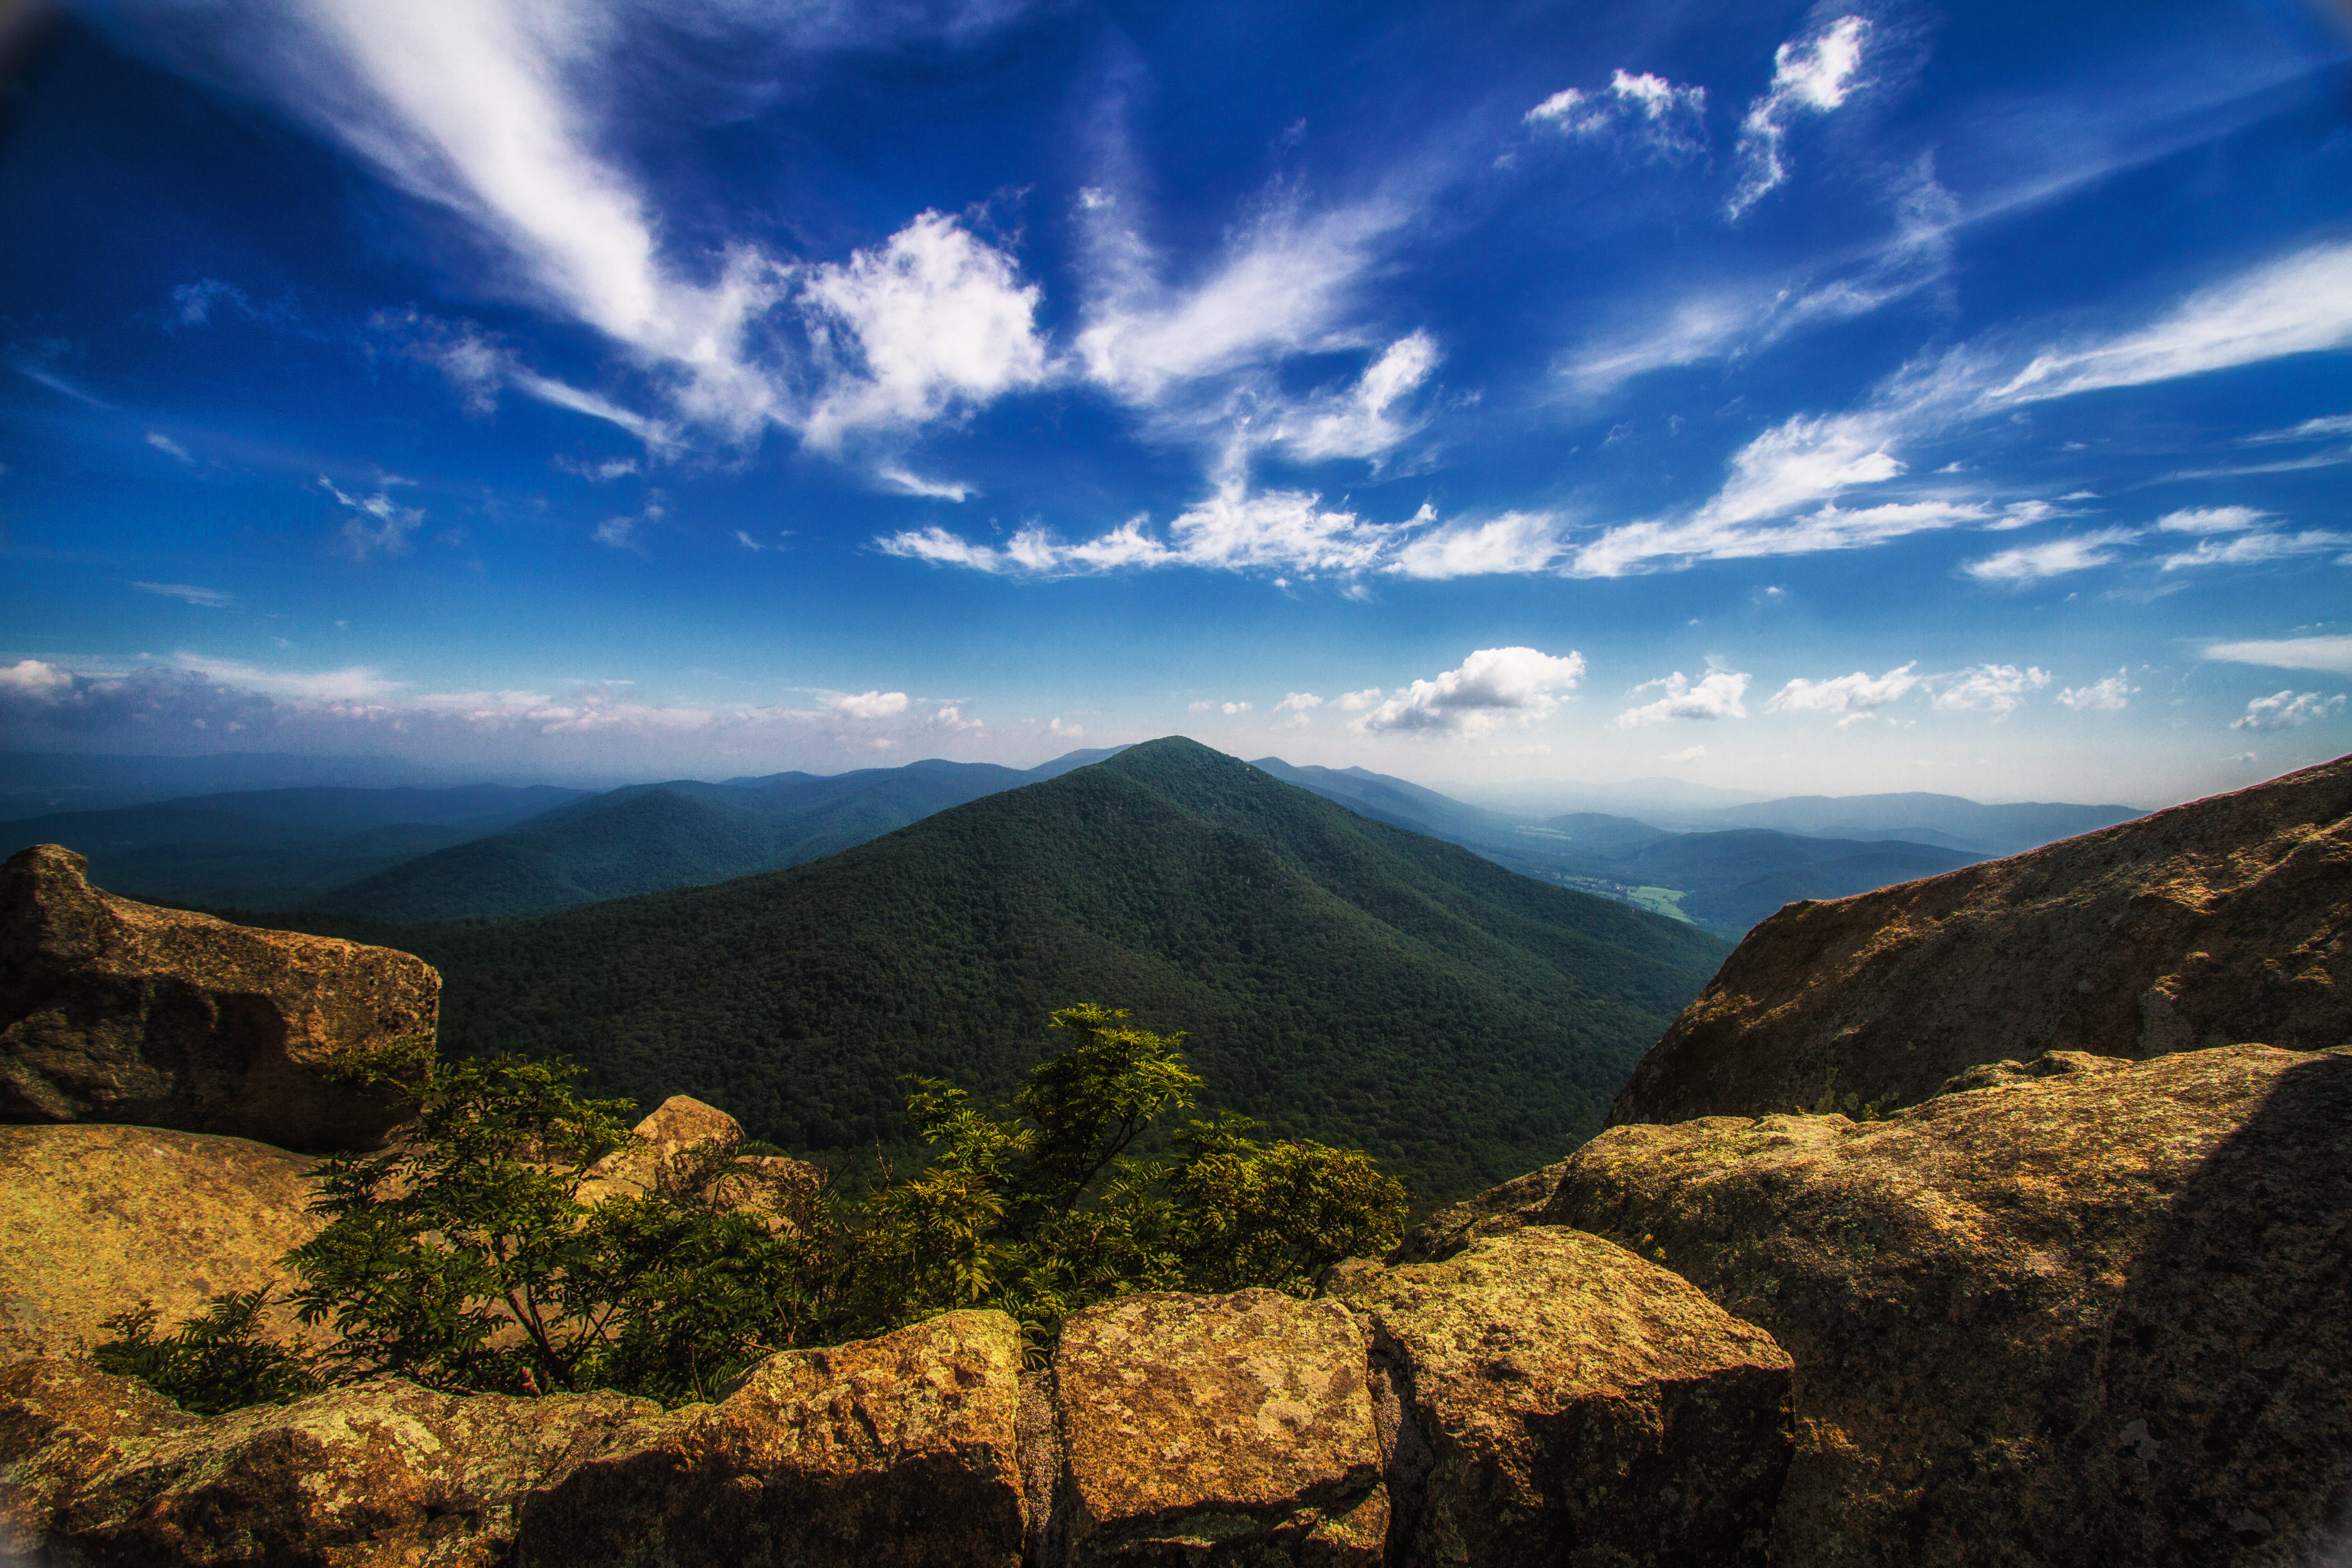 129485 download wallpaper Nature, Stones, Mountain, Vertex, Top, National Park, Mountain Landscape, Hawkesbill, Hawksbill, Shenandoah screensavers and pictures for free